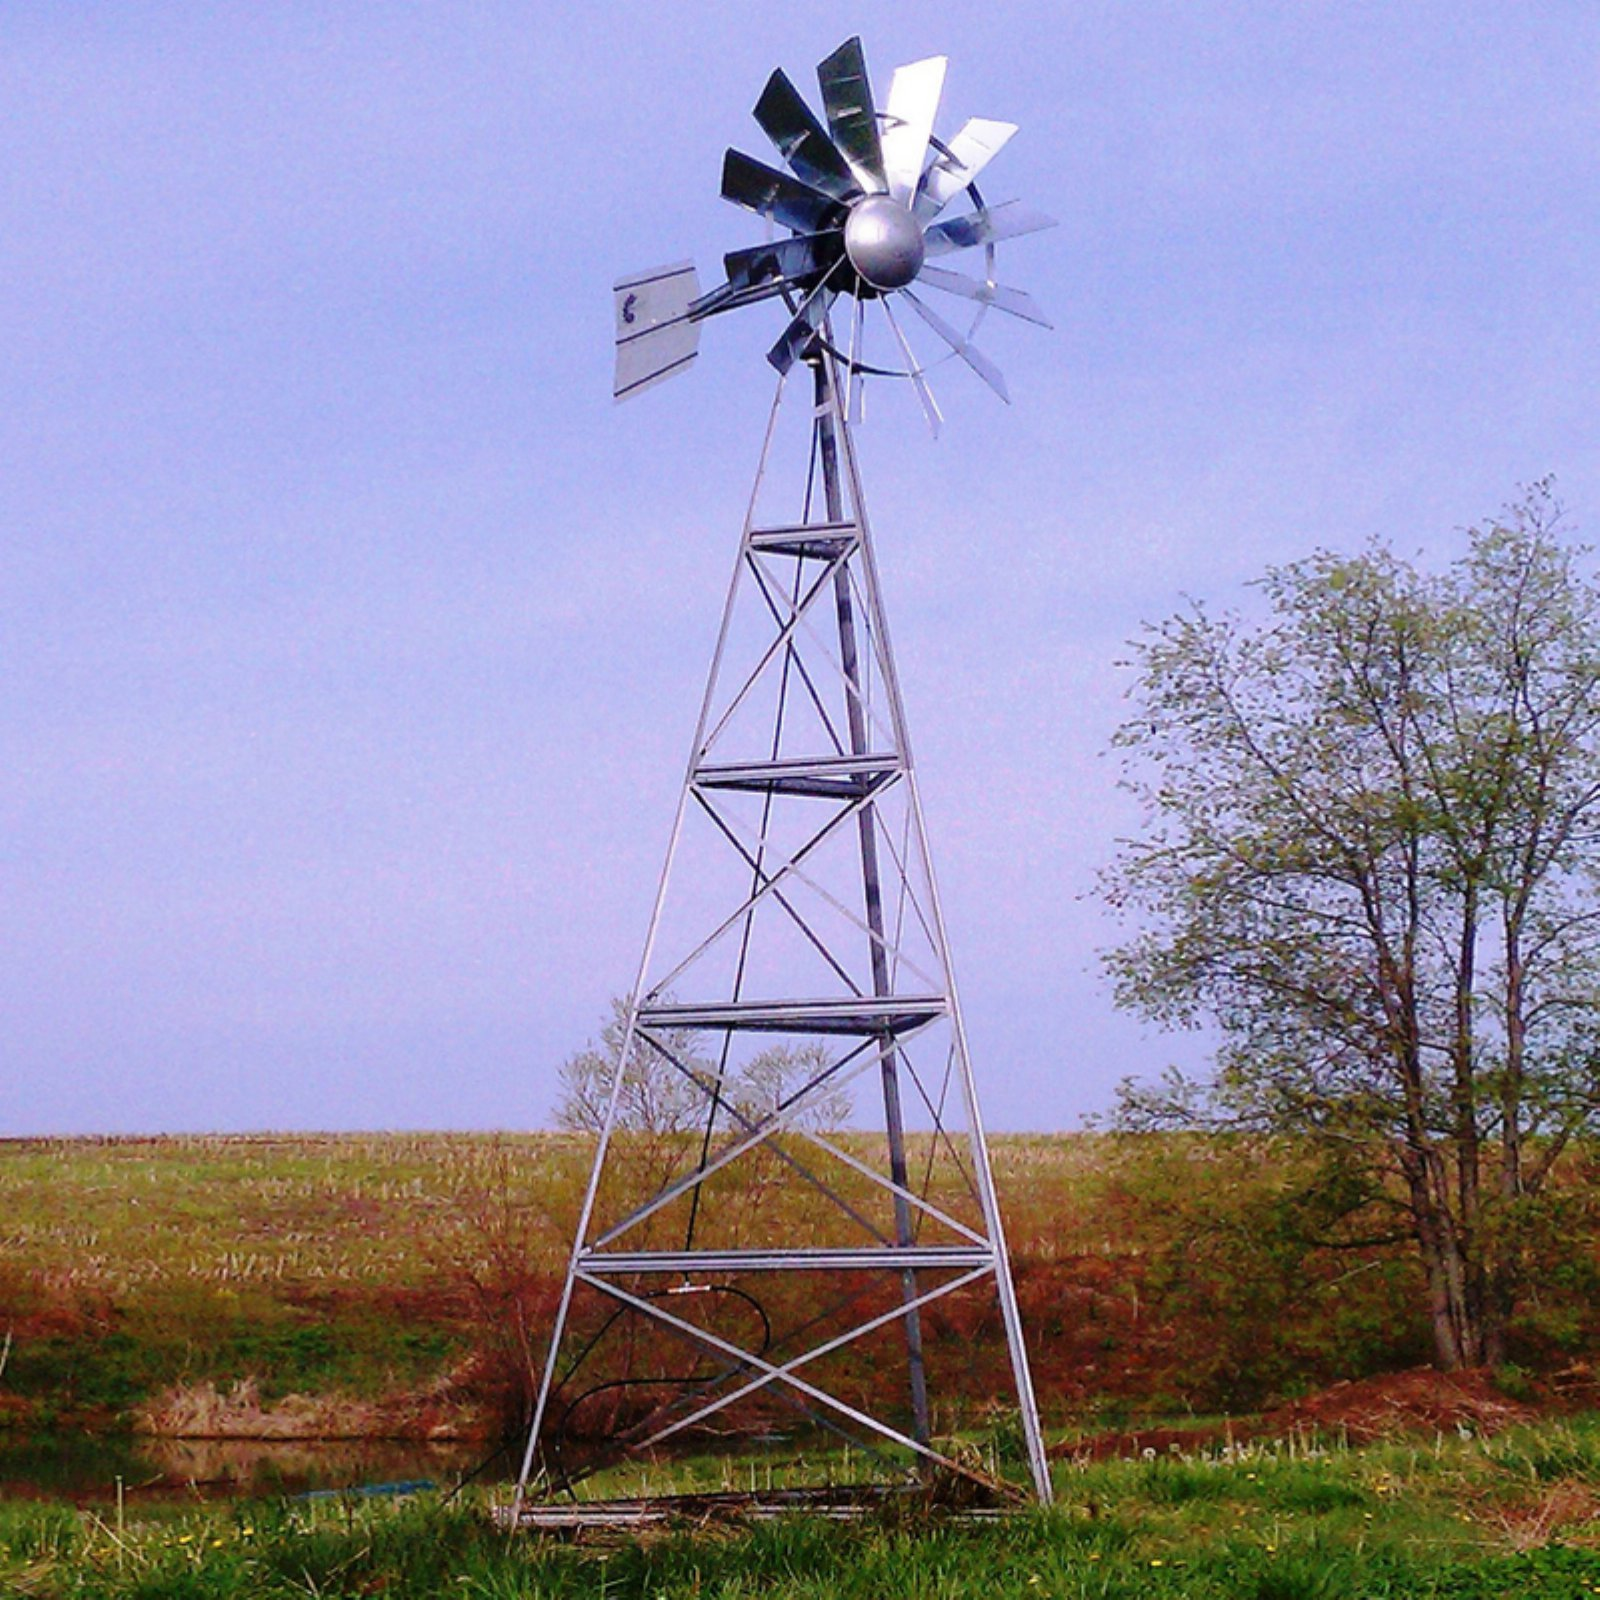 Deluxe 20 ft. 3 Legged Underwater Aeration Windmill System by Outdoor Water Solutions